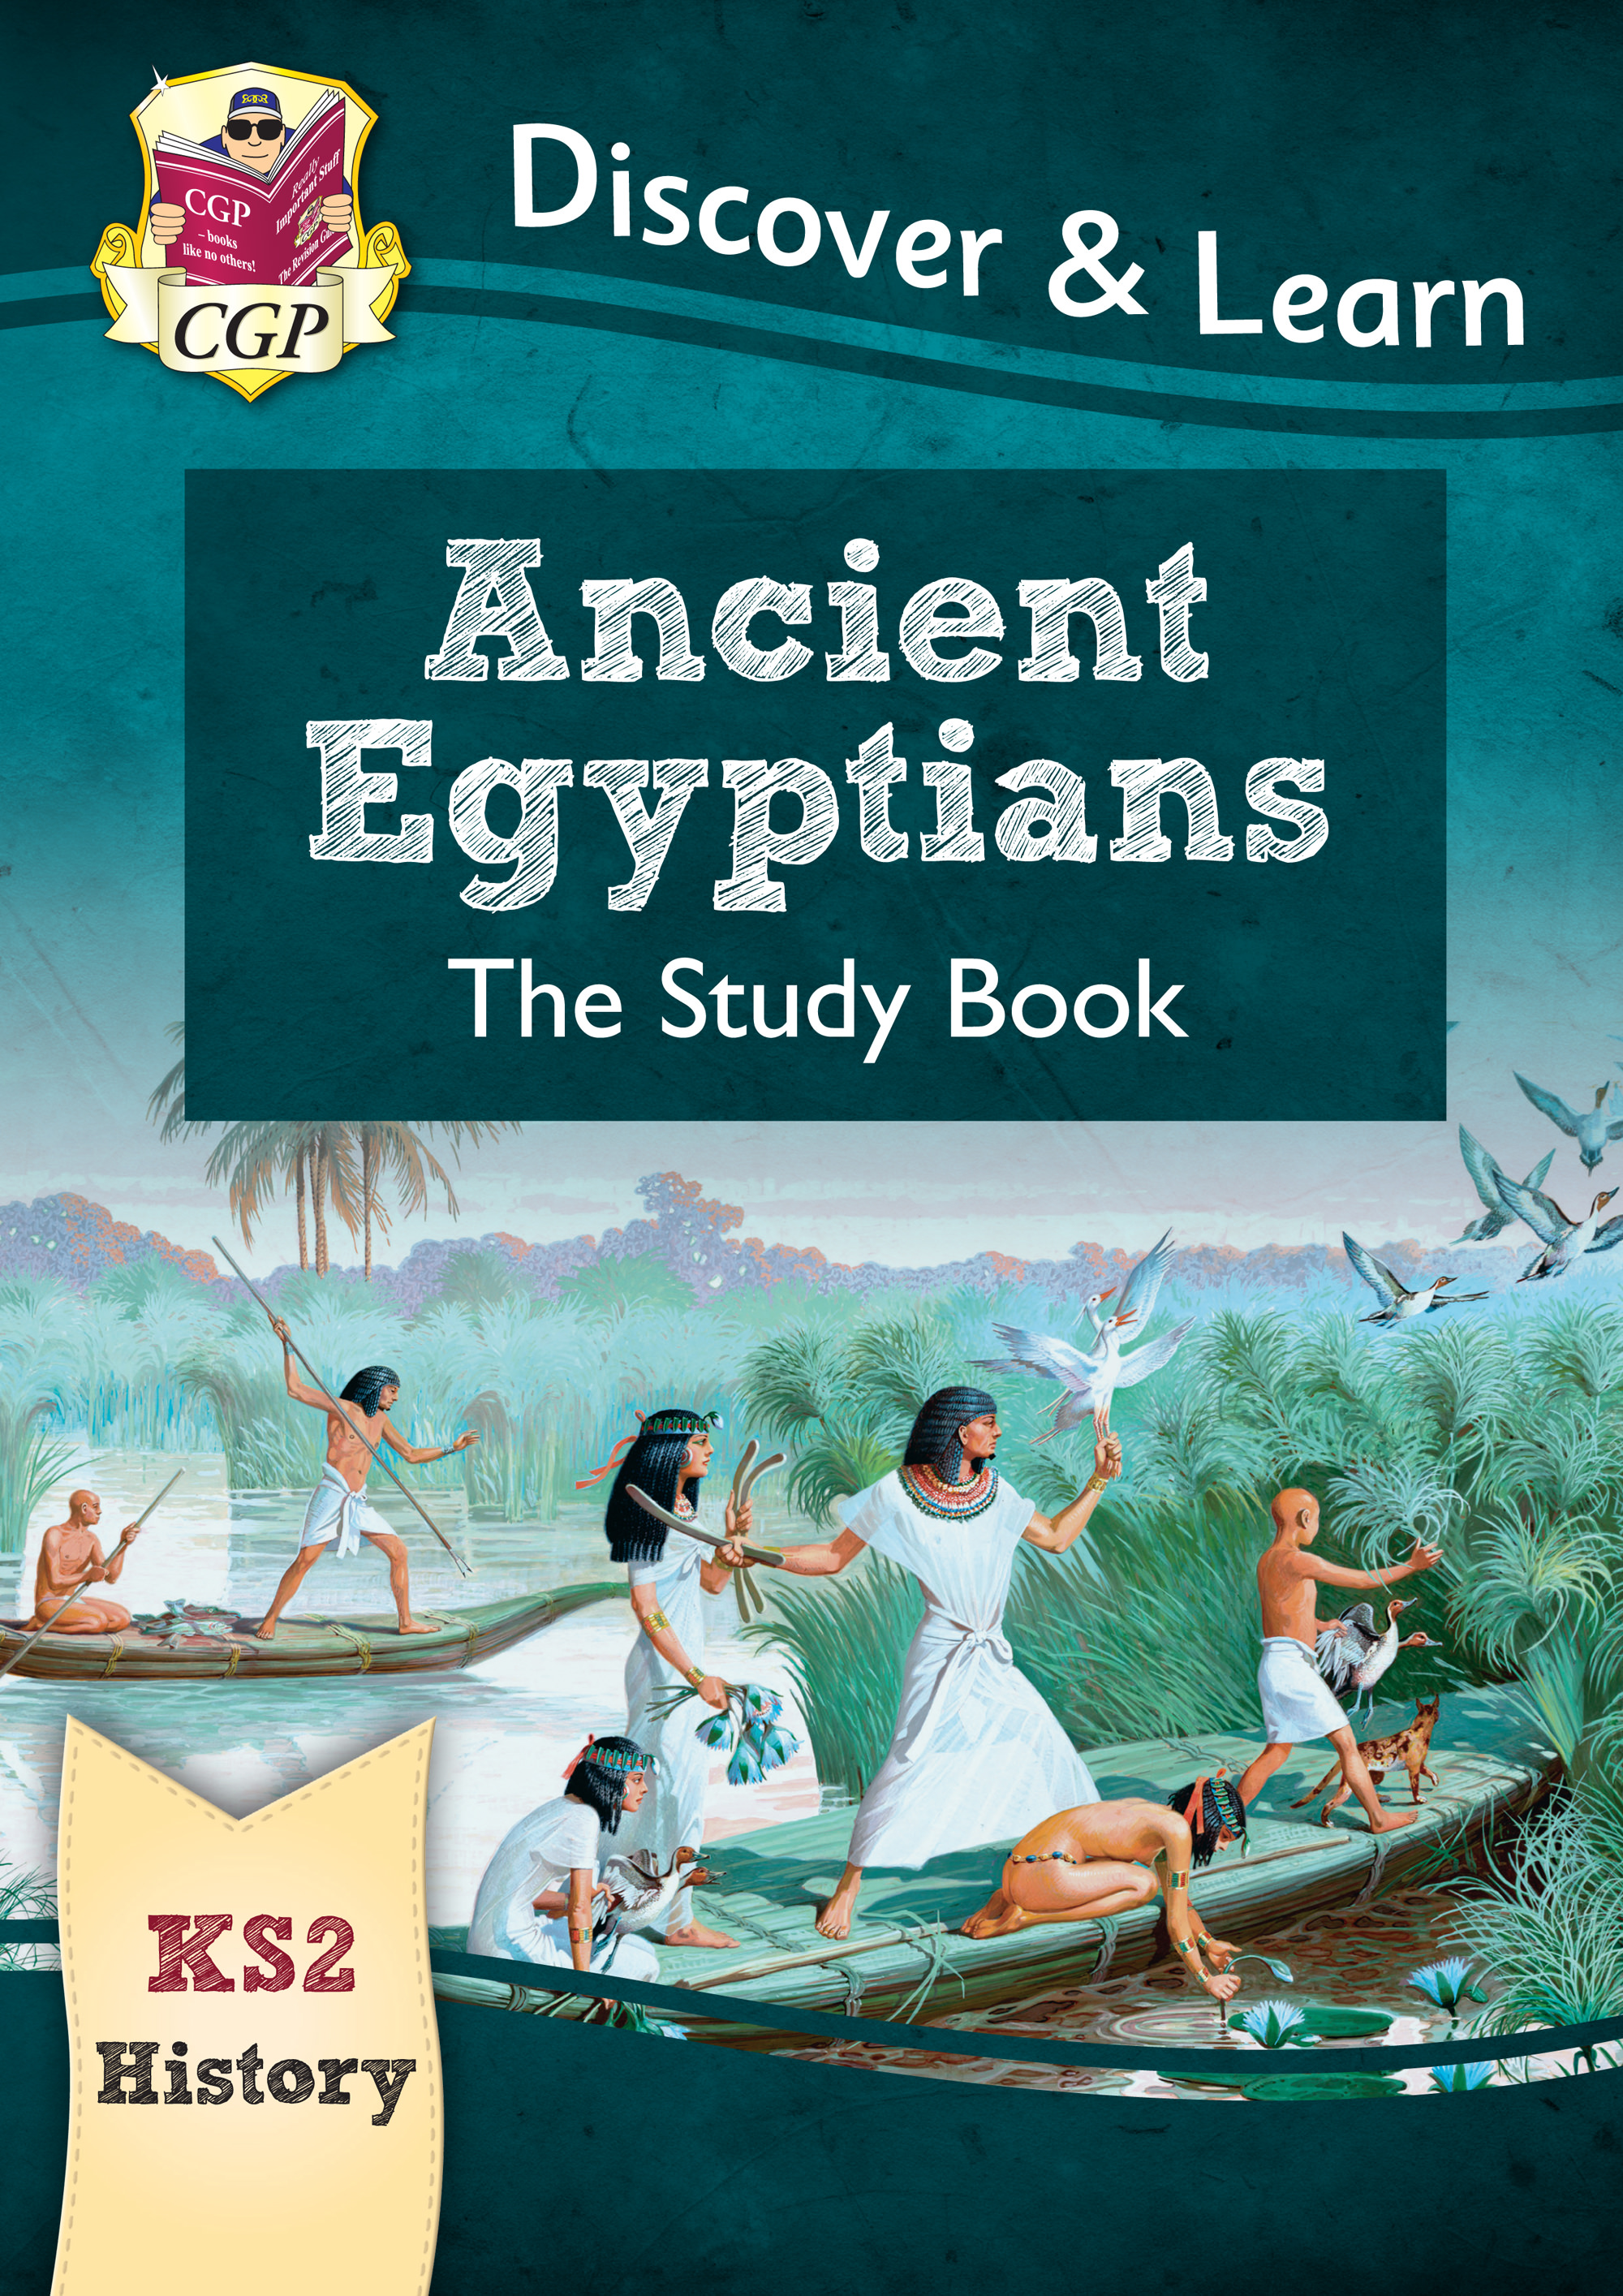 HER21 - KS2 Discover & Learn: History - Ancient Egyptians Study Book